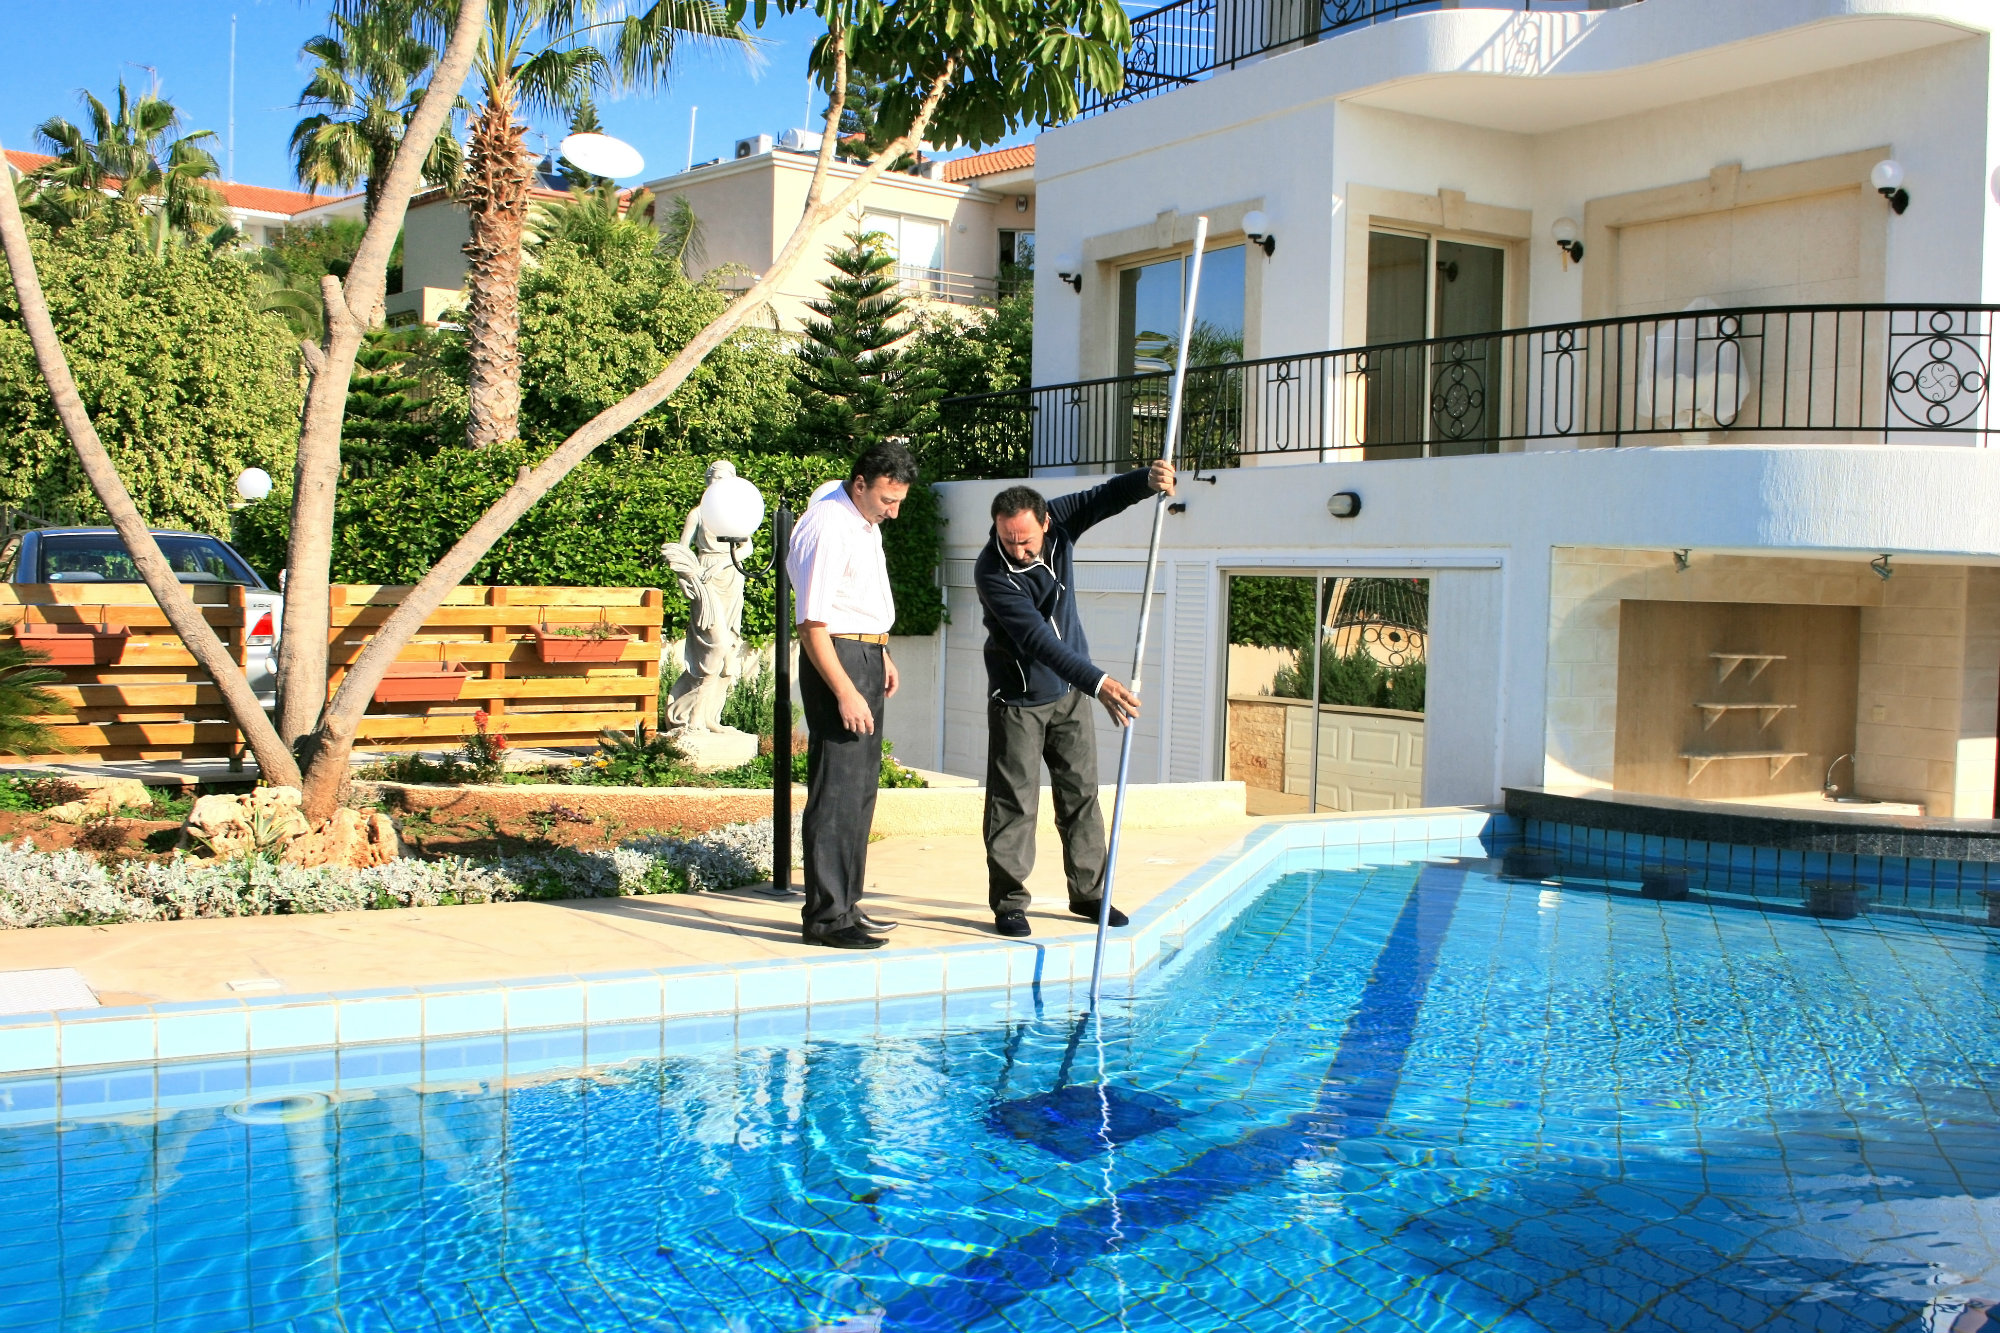 Teaching Customers Five Essential Tips Every Pool Service